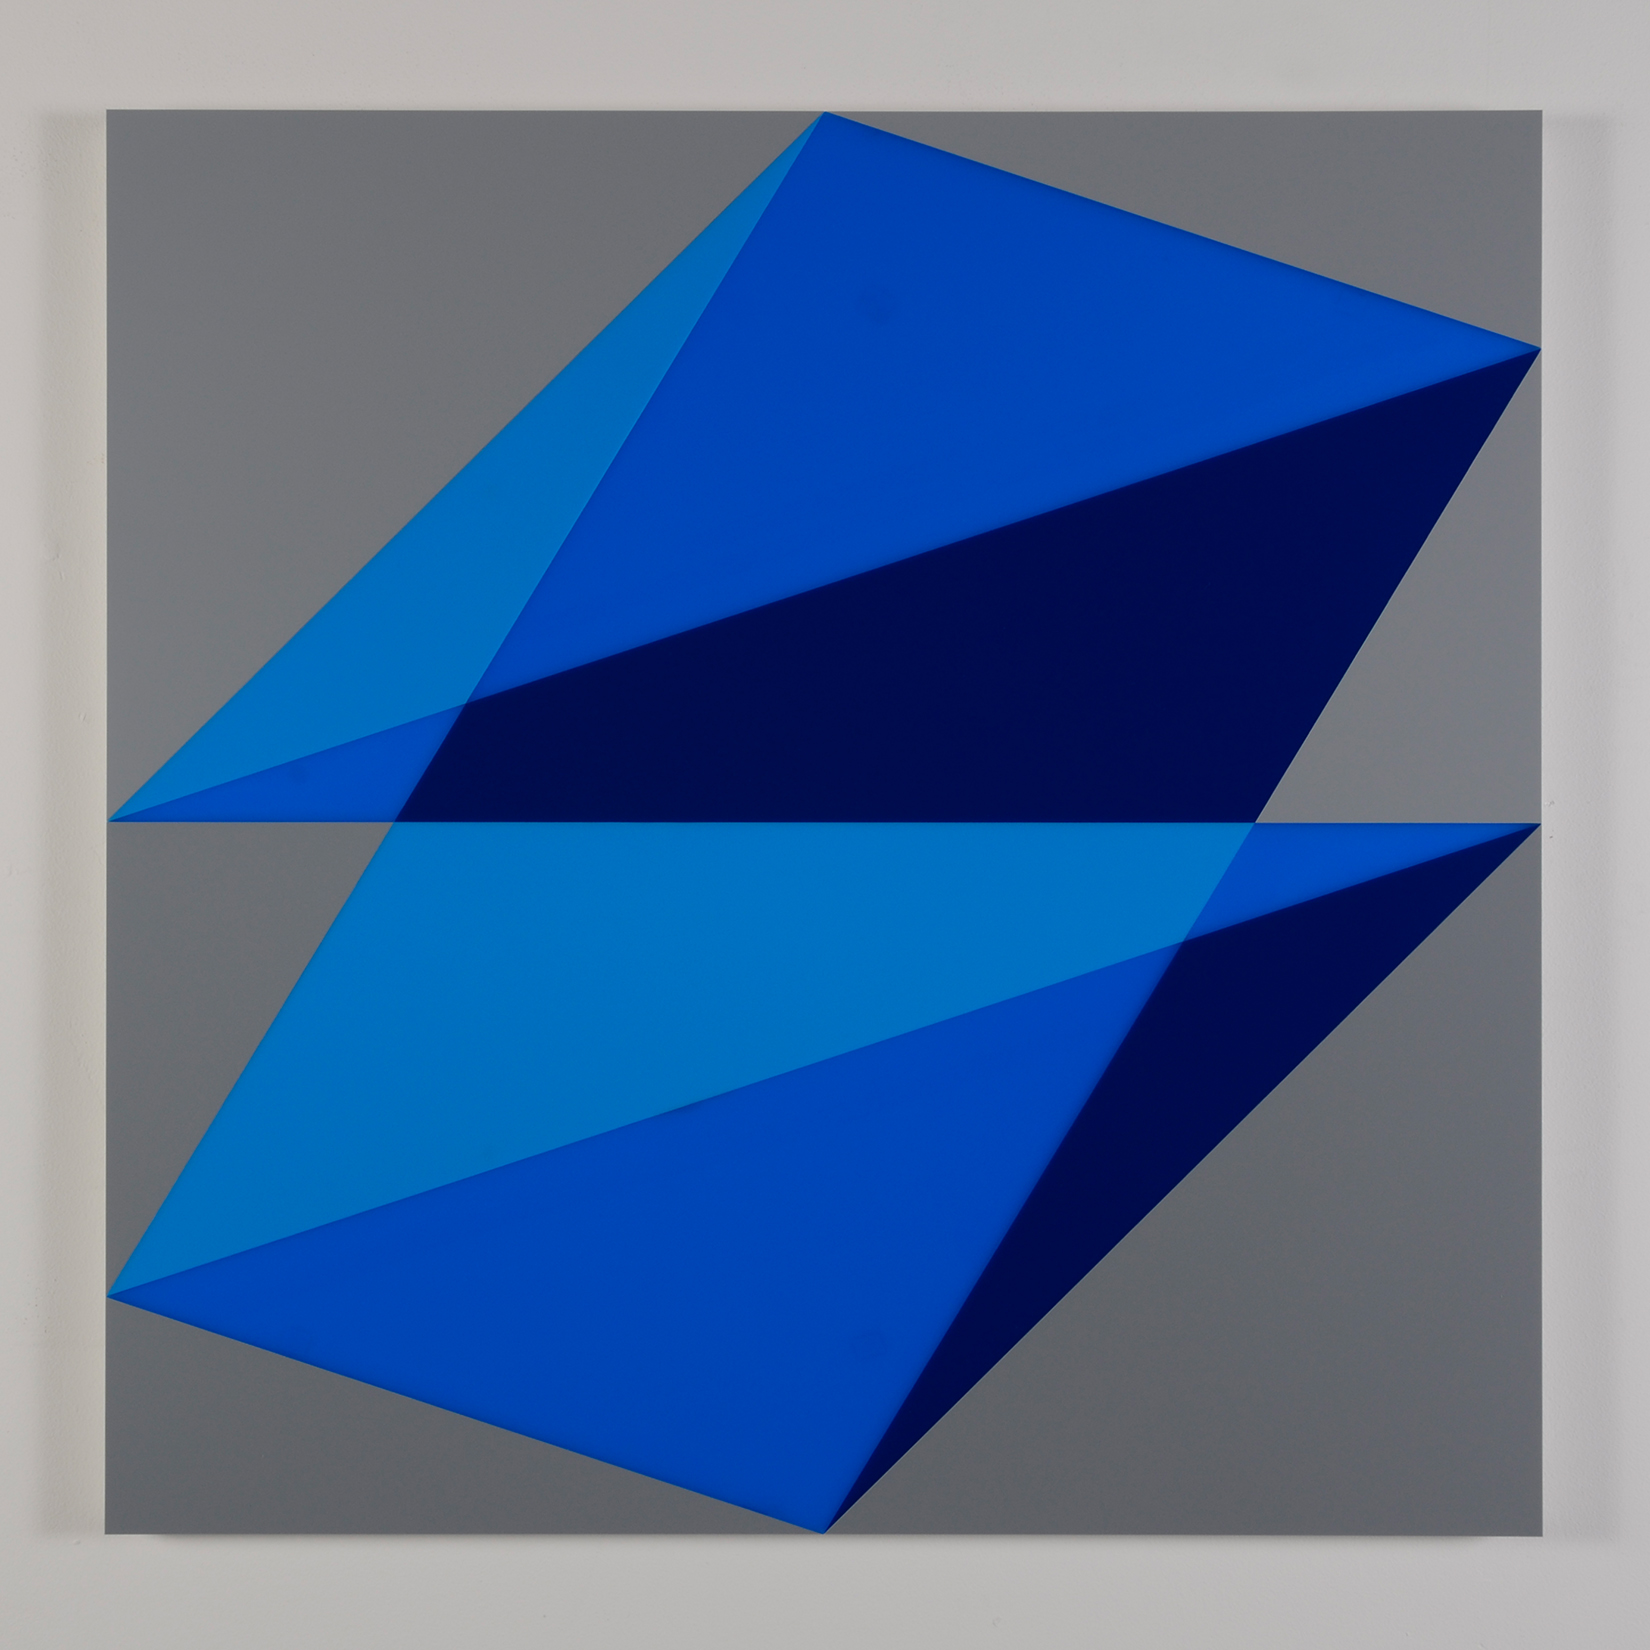 "Composition in 2648 Blue, 2051 Blue, 2114 Blue and 3001 Gray Colored Plexiglas mounted on panel 37.5"" x 37.5"" 2015"